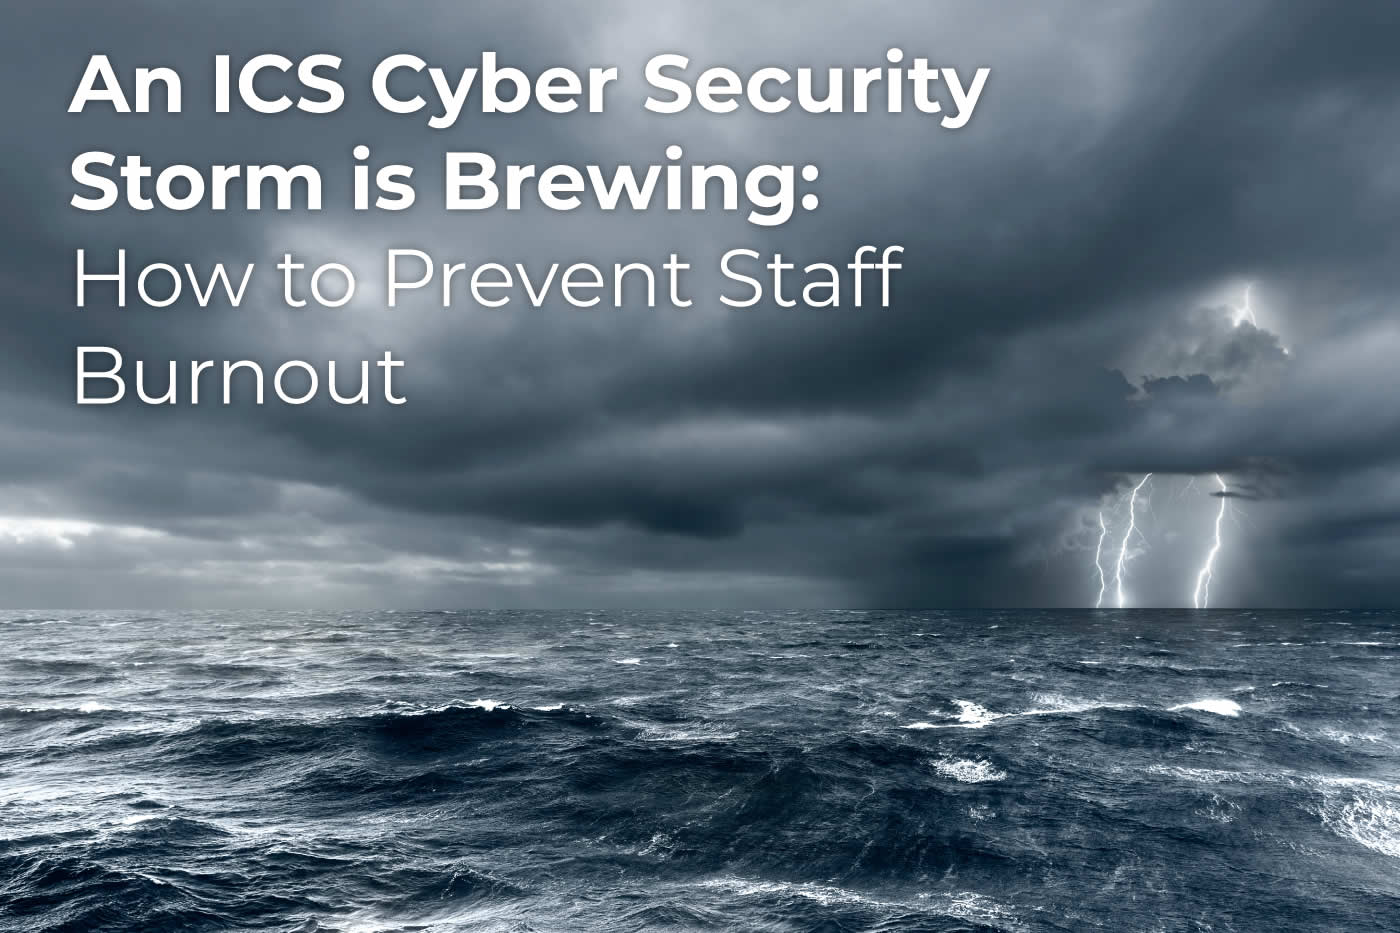 An ICS Cybersecurity Storm is Brewing: How to Prevent Staff Burnout